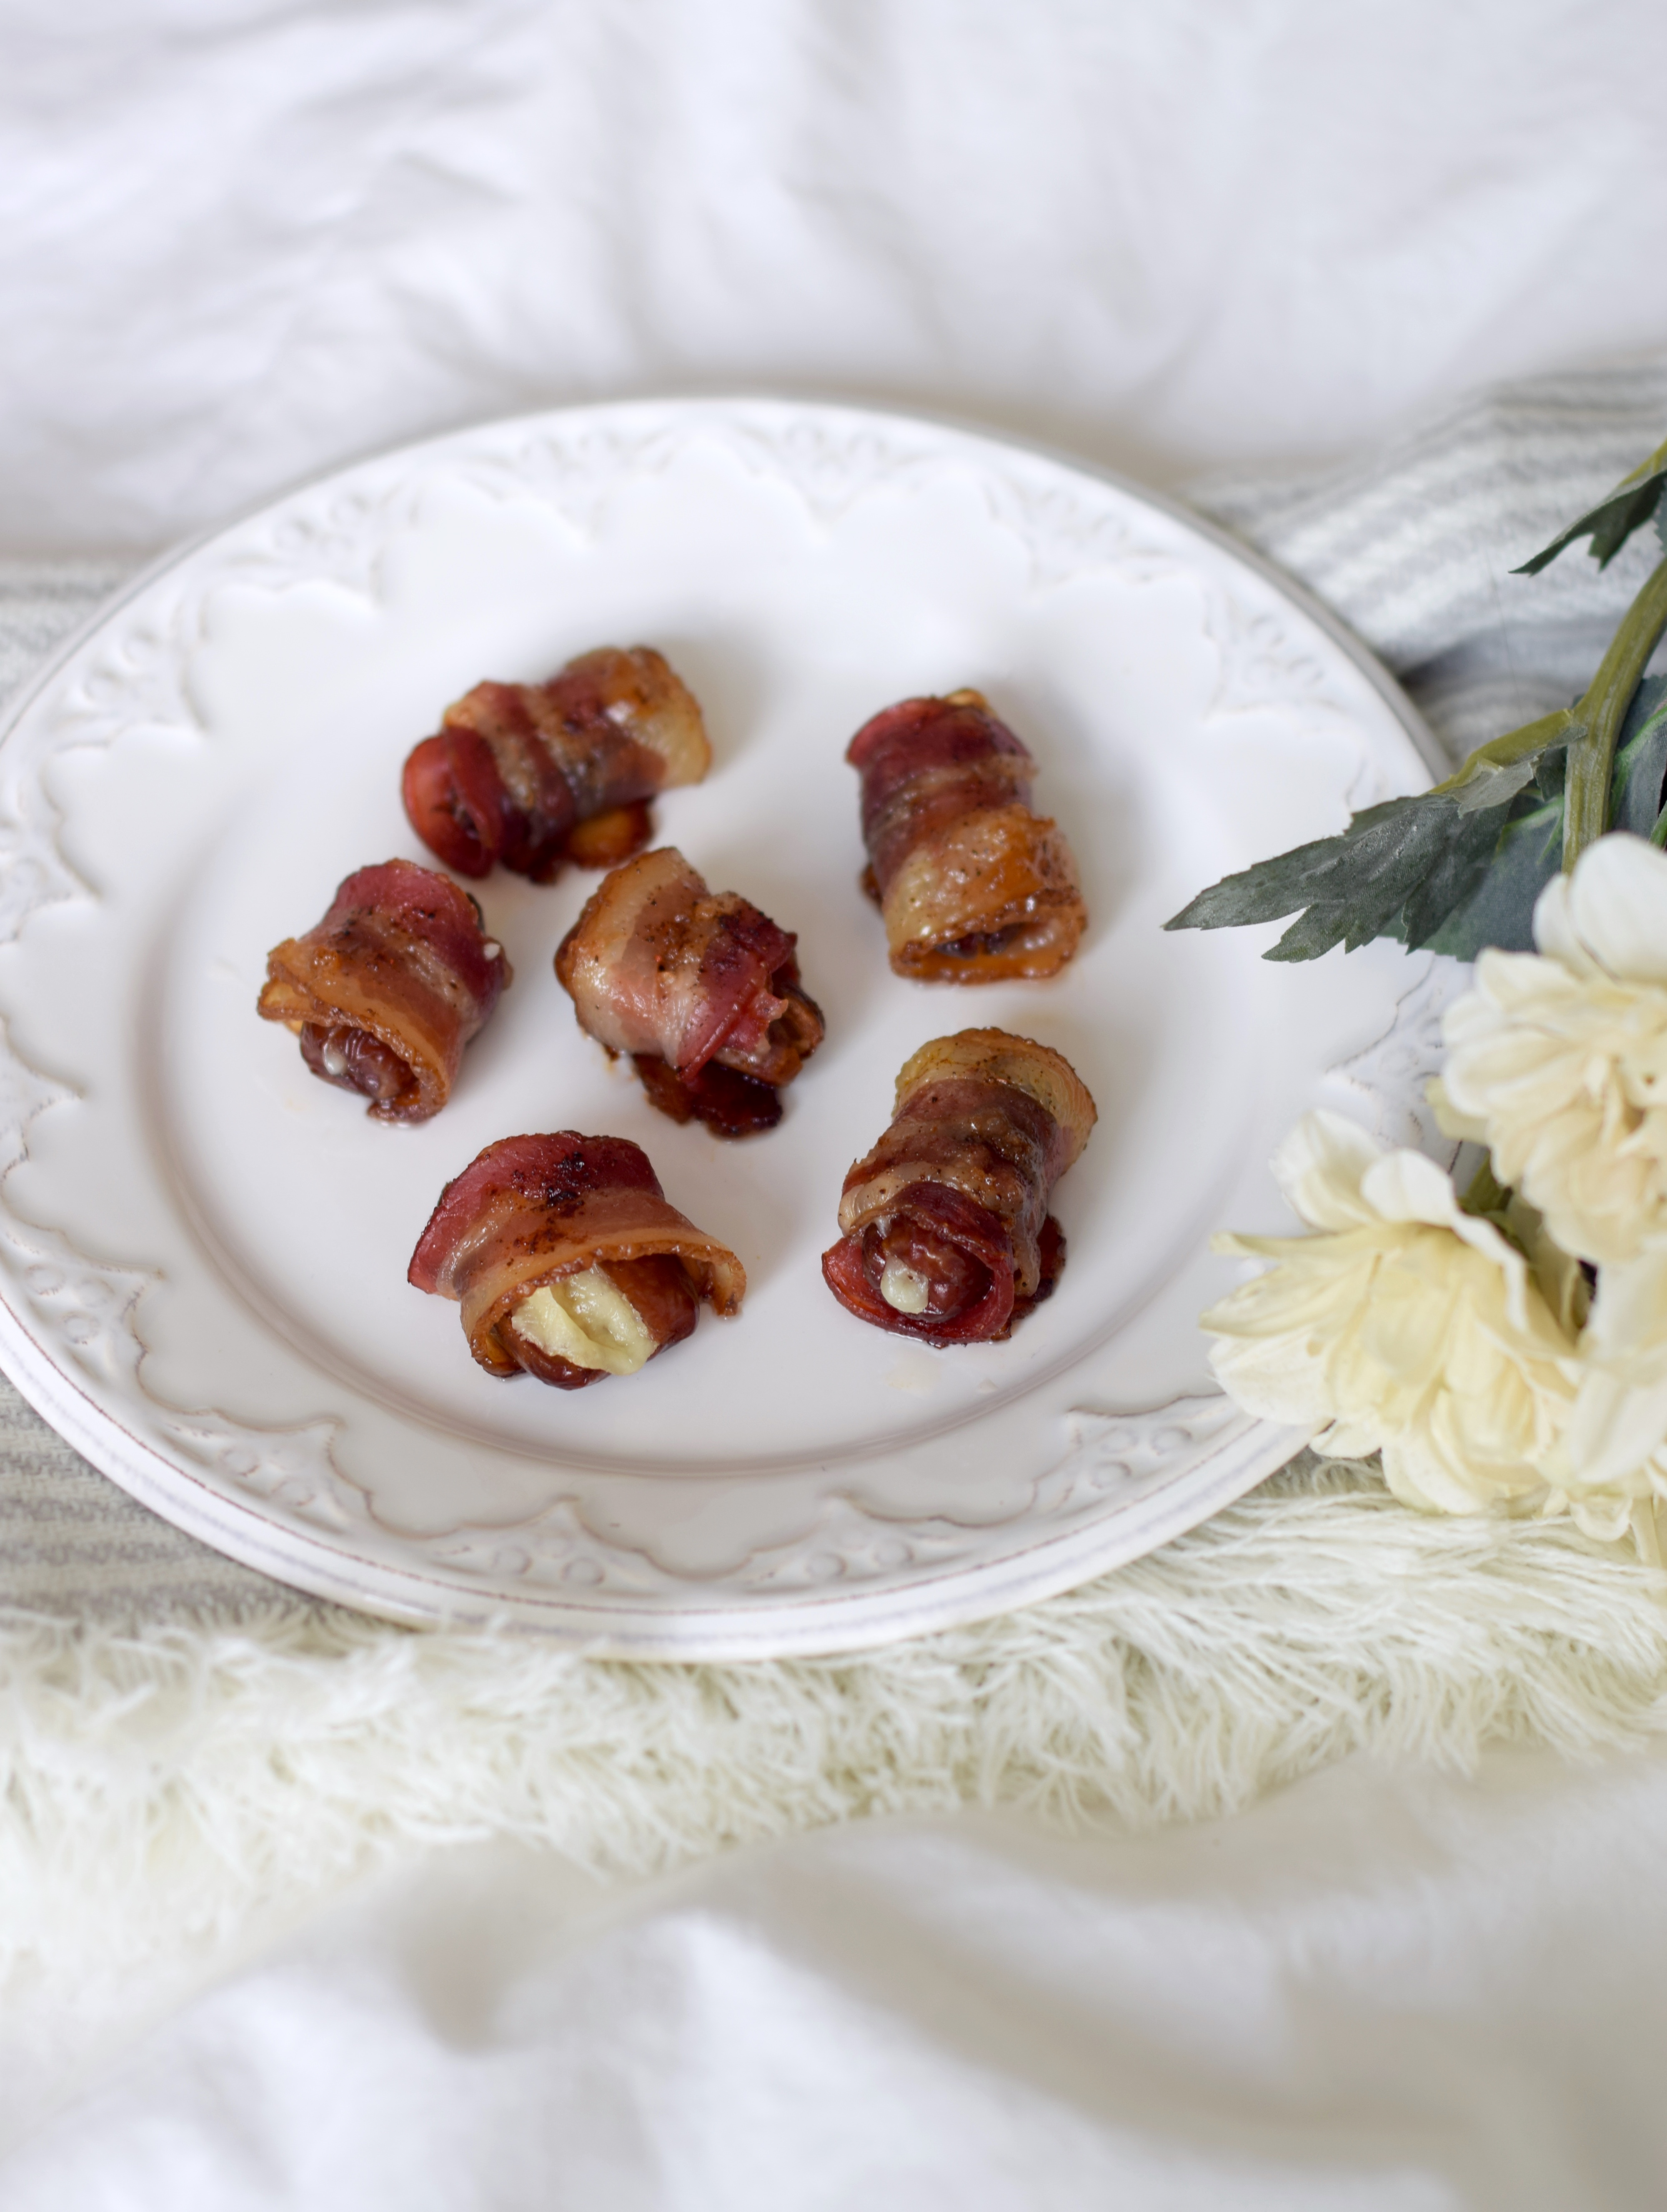 Candied Bacon Wrapped Dates